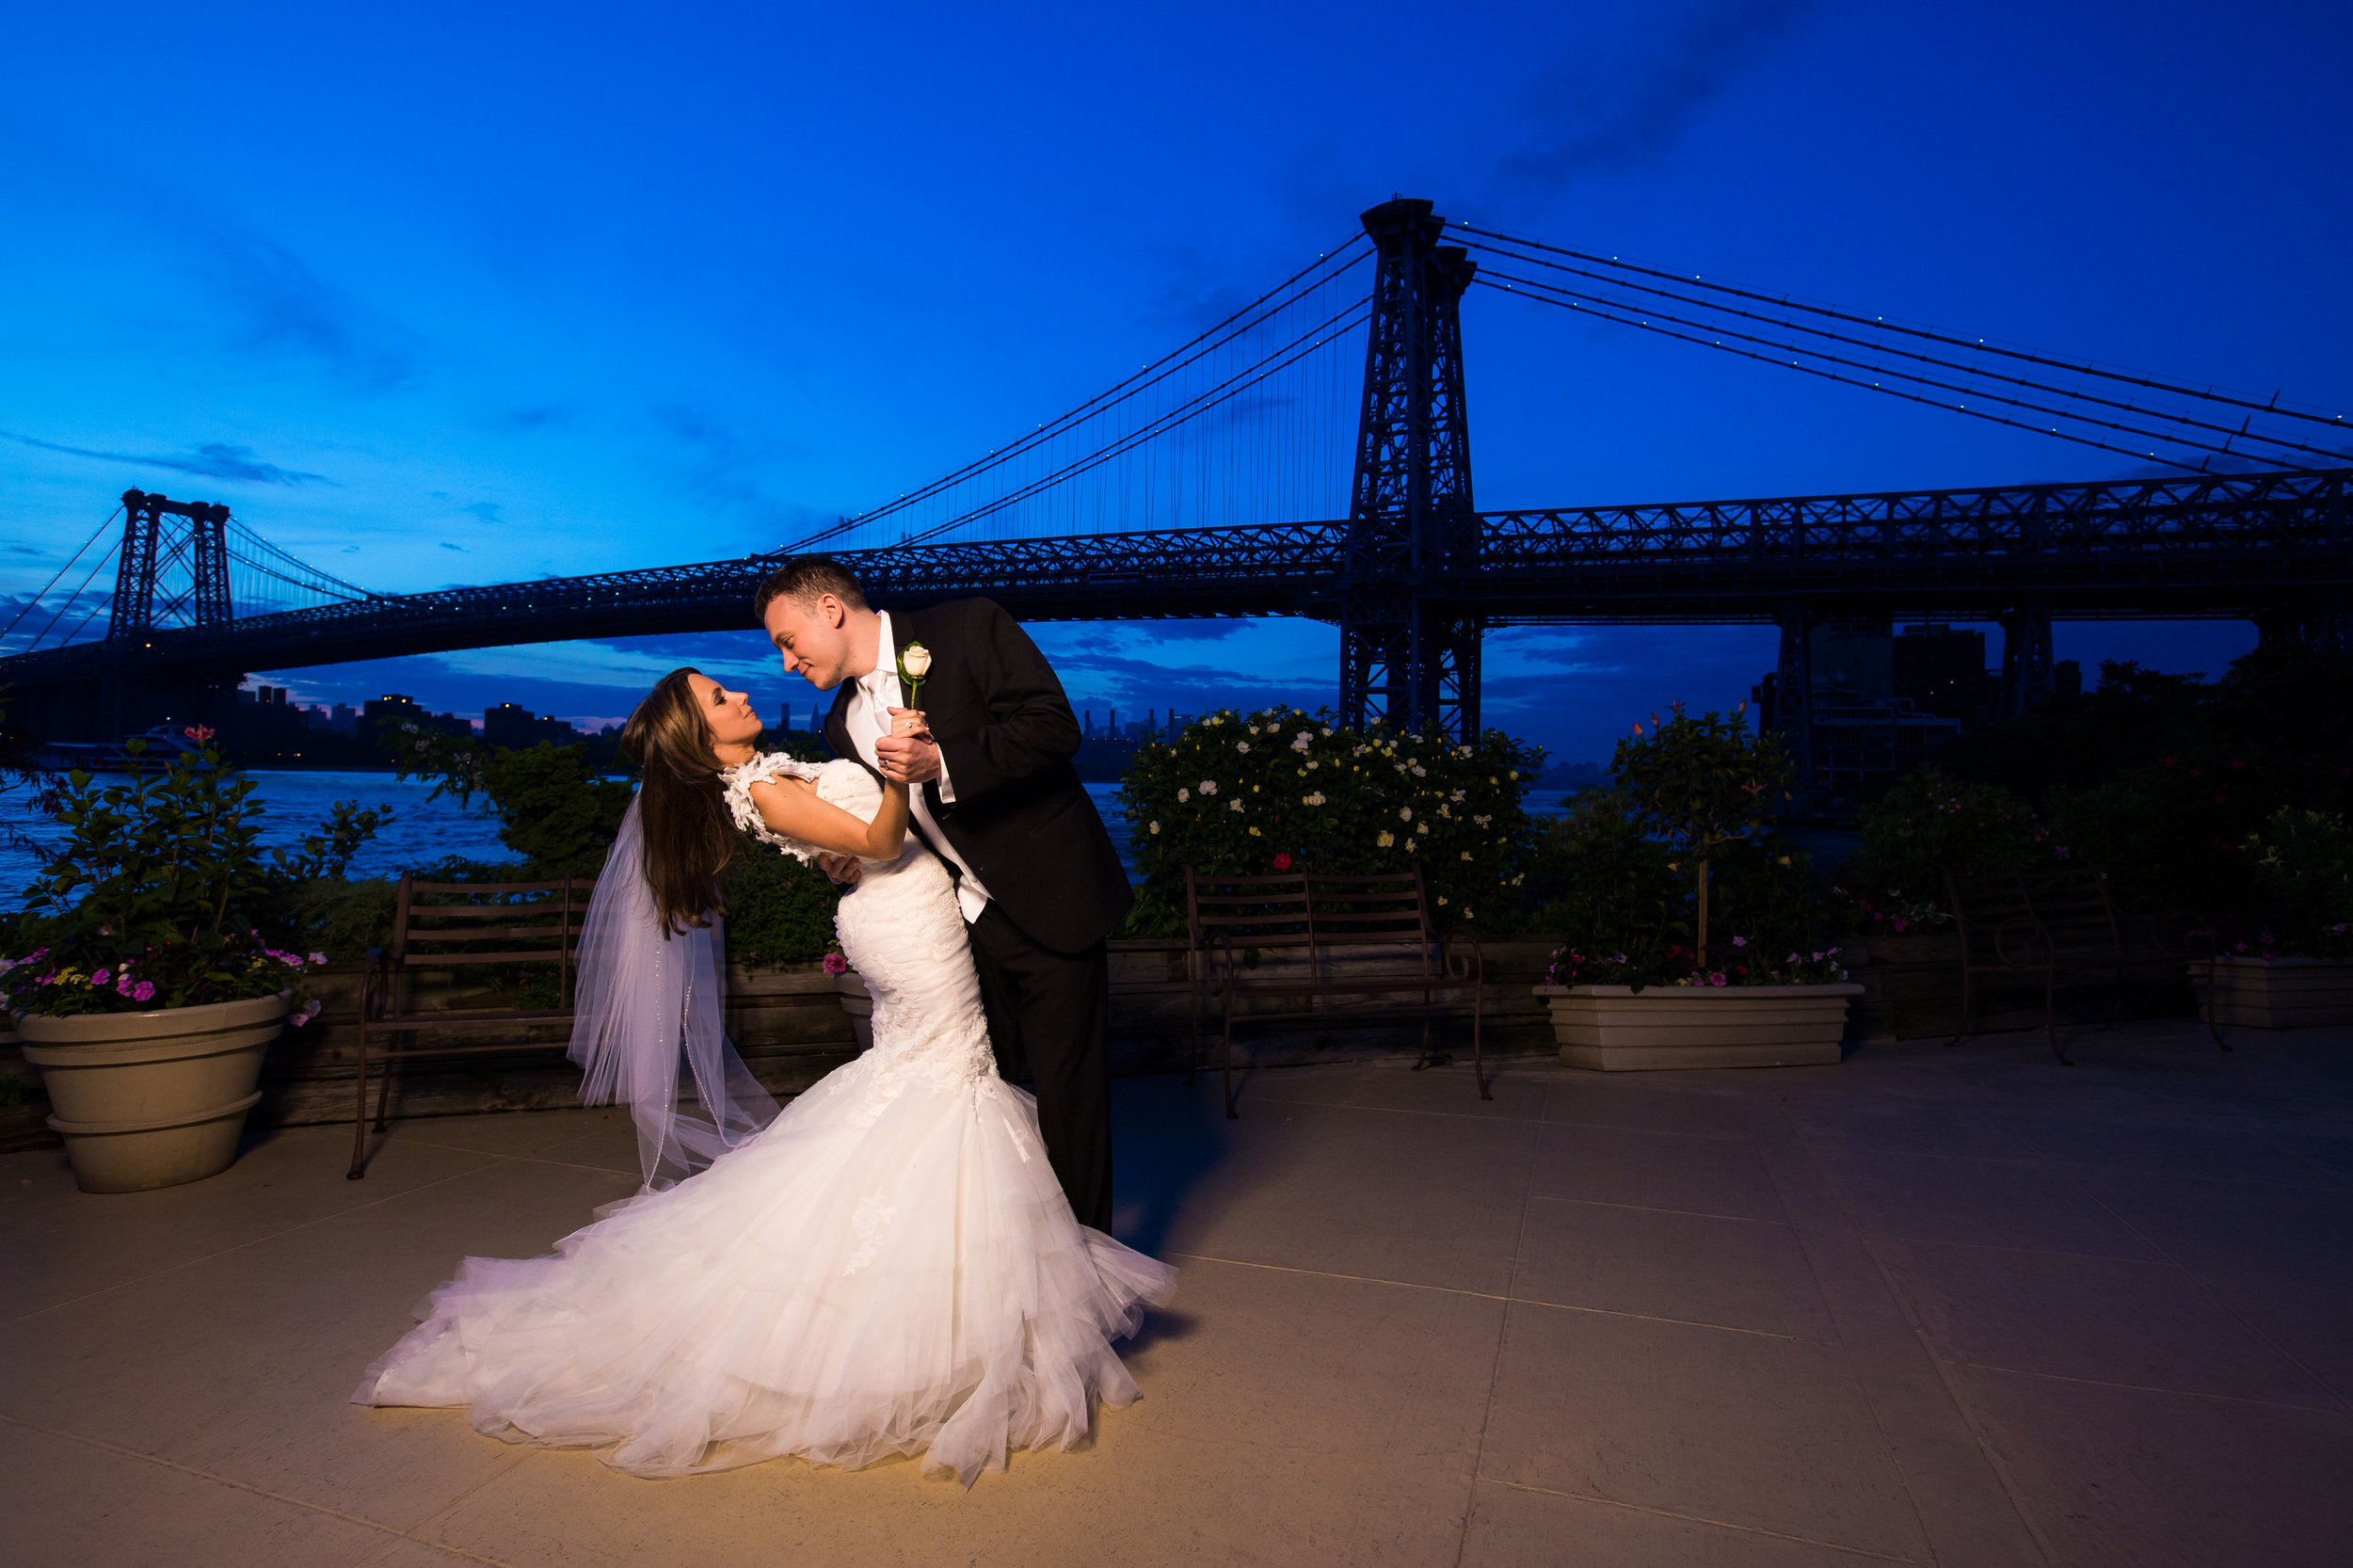 Giando on the Water New York Wedding Photography in Brooklyn